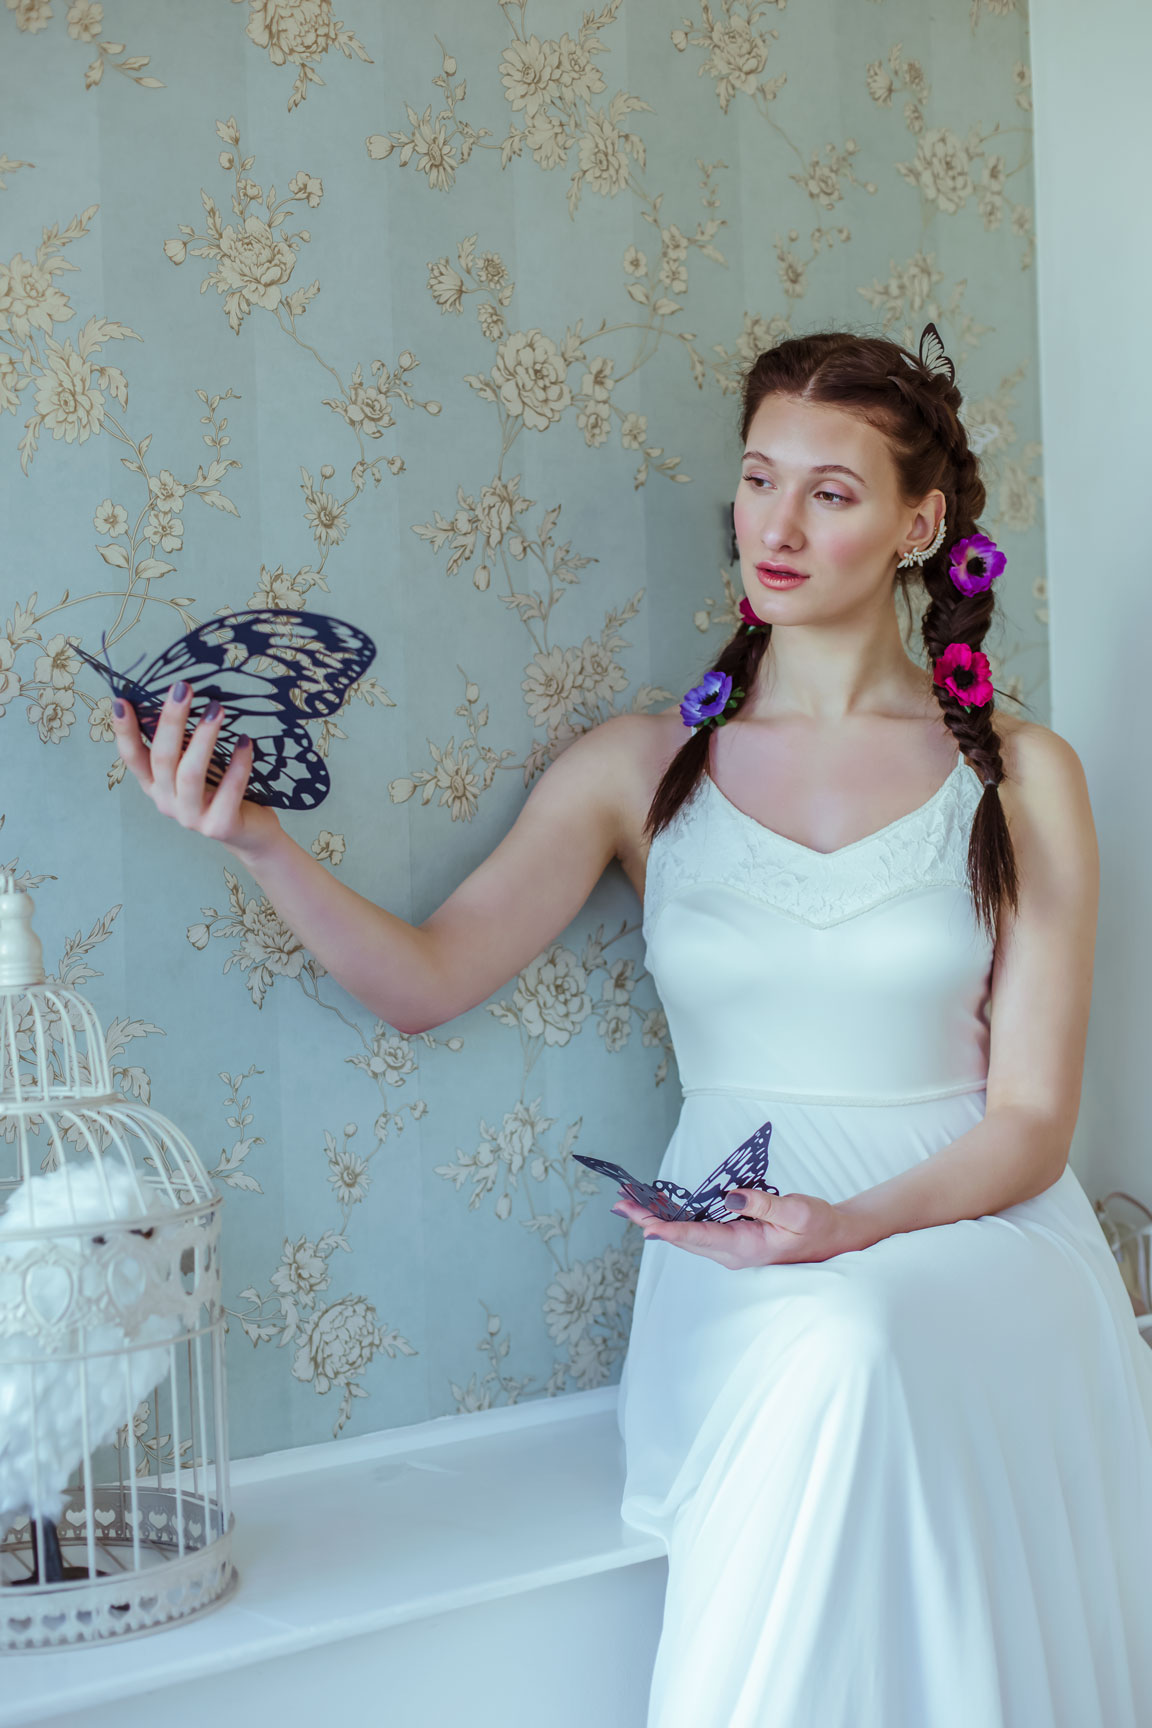 May & Grace Bridal - 3 alternative bridal looks 5 - butterflies - pink and purple flowers